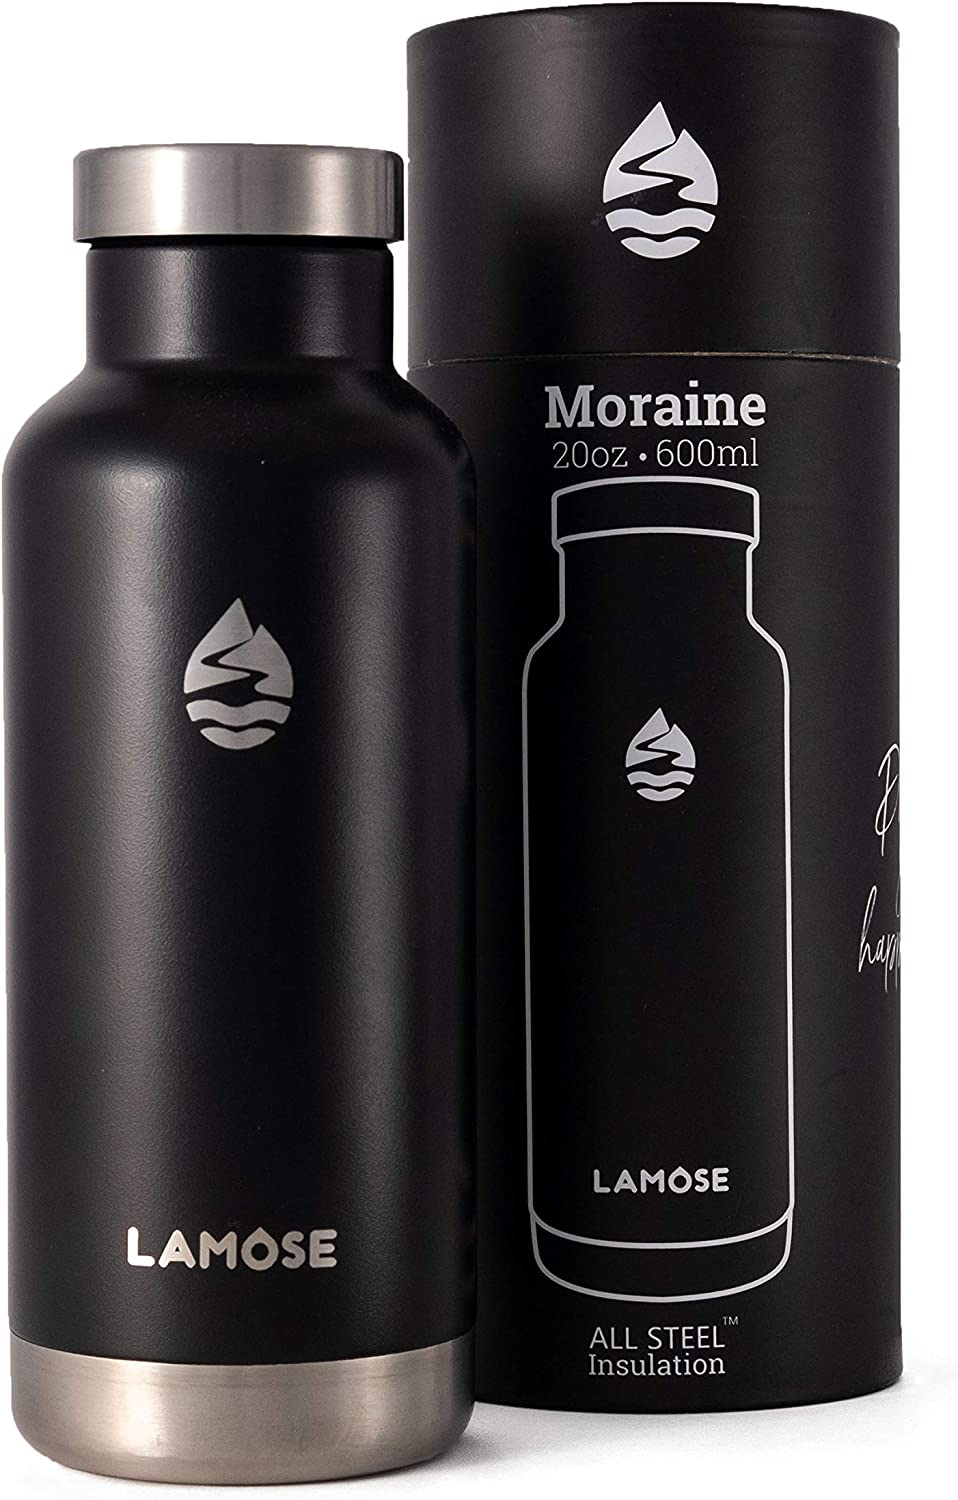 LAMOSE Insulated Water Bottle, Stainless Steel, Double Wall Vacuum Insulation, Wide Mouth 12 hrs hot/24 hrs Cold, Lifetime Manufacturer's Warranty, Scratch Resistant Coating Design